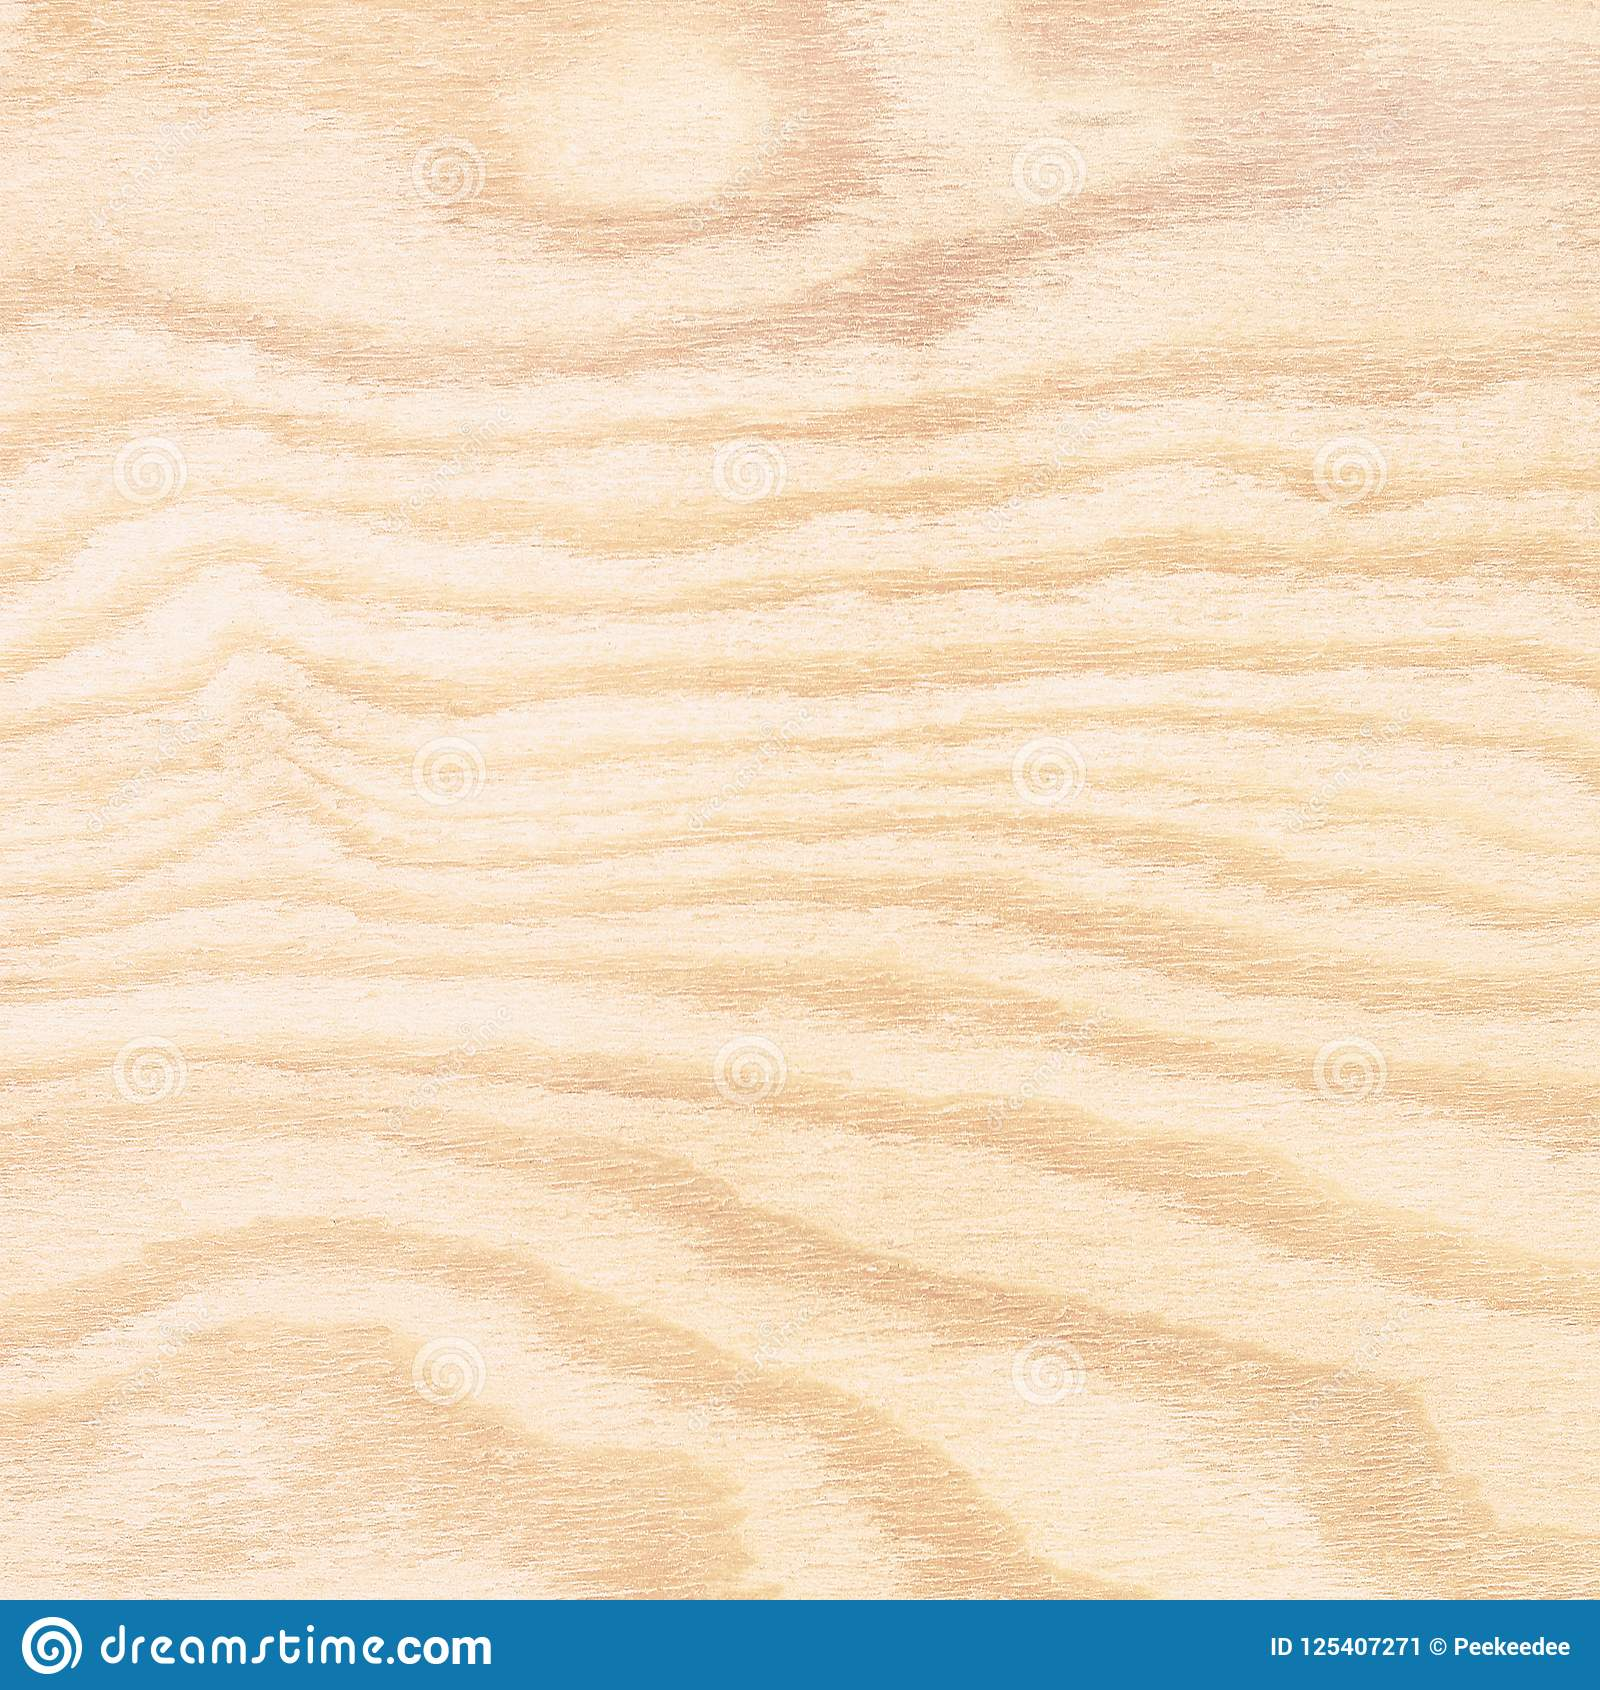 Plywood Texture With Natural Wood Pattern Background Stock Image